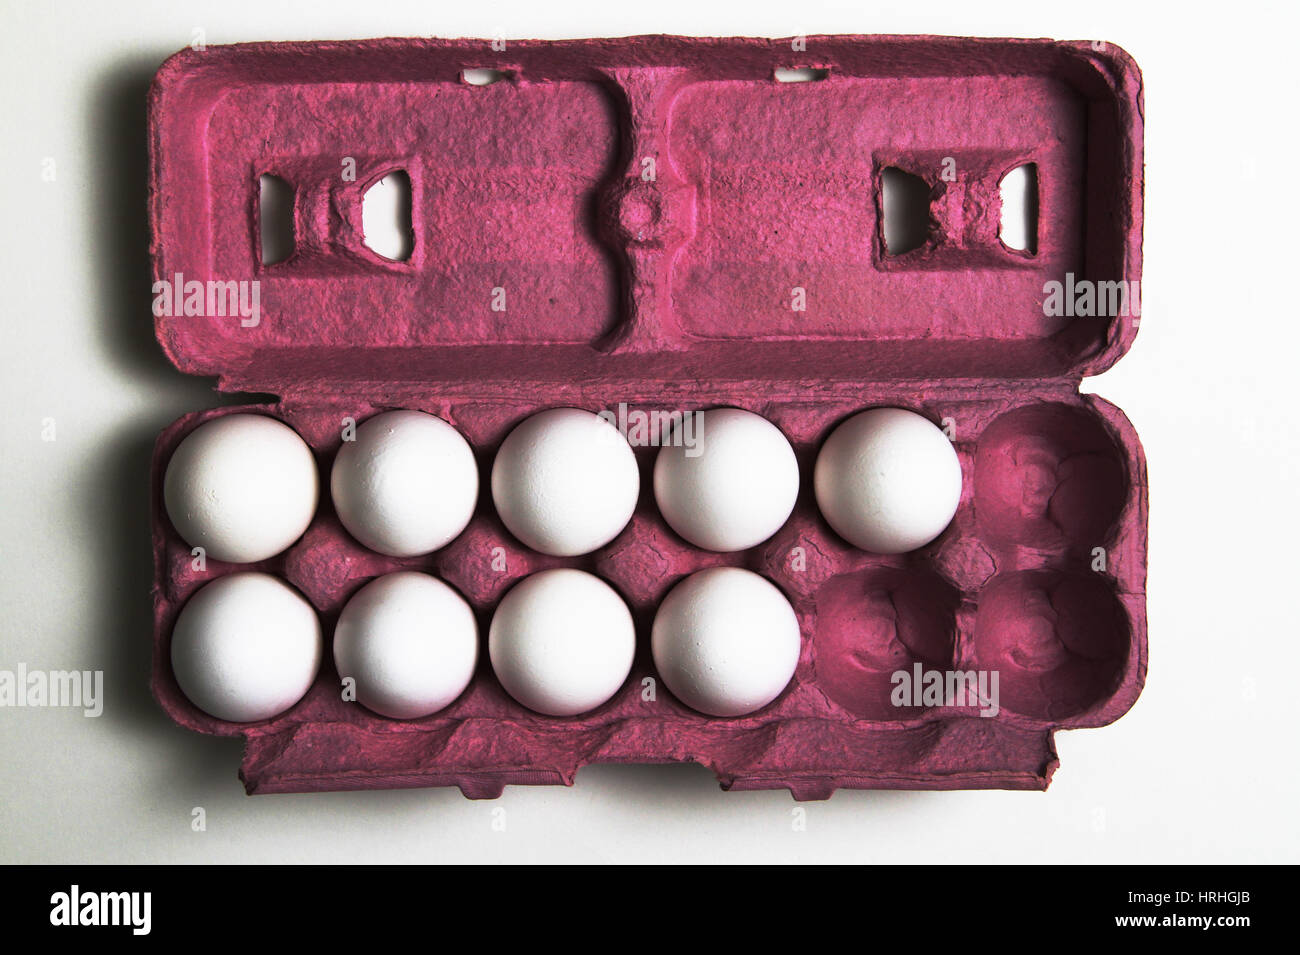 3 More Eggs Equals a Dozen Stock Photo